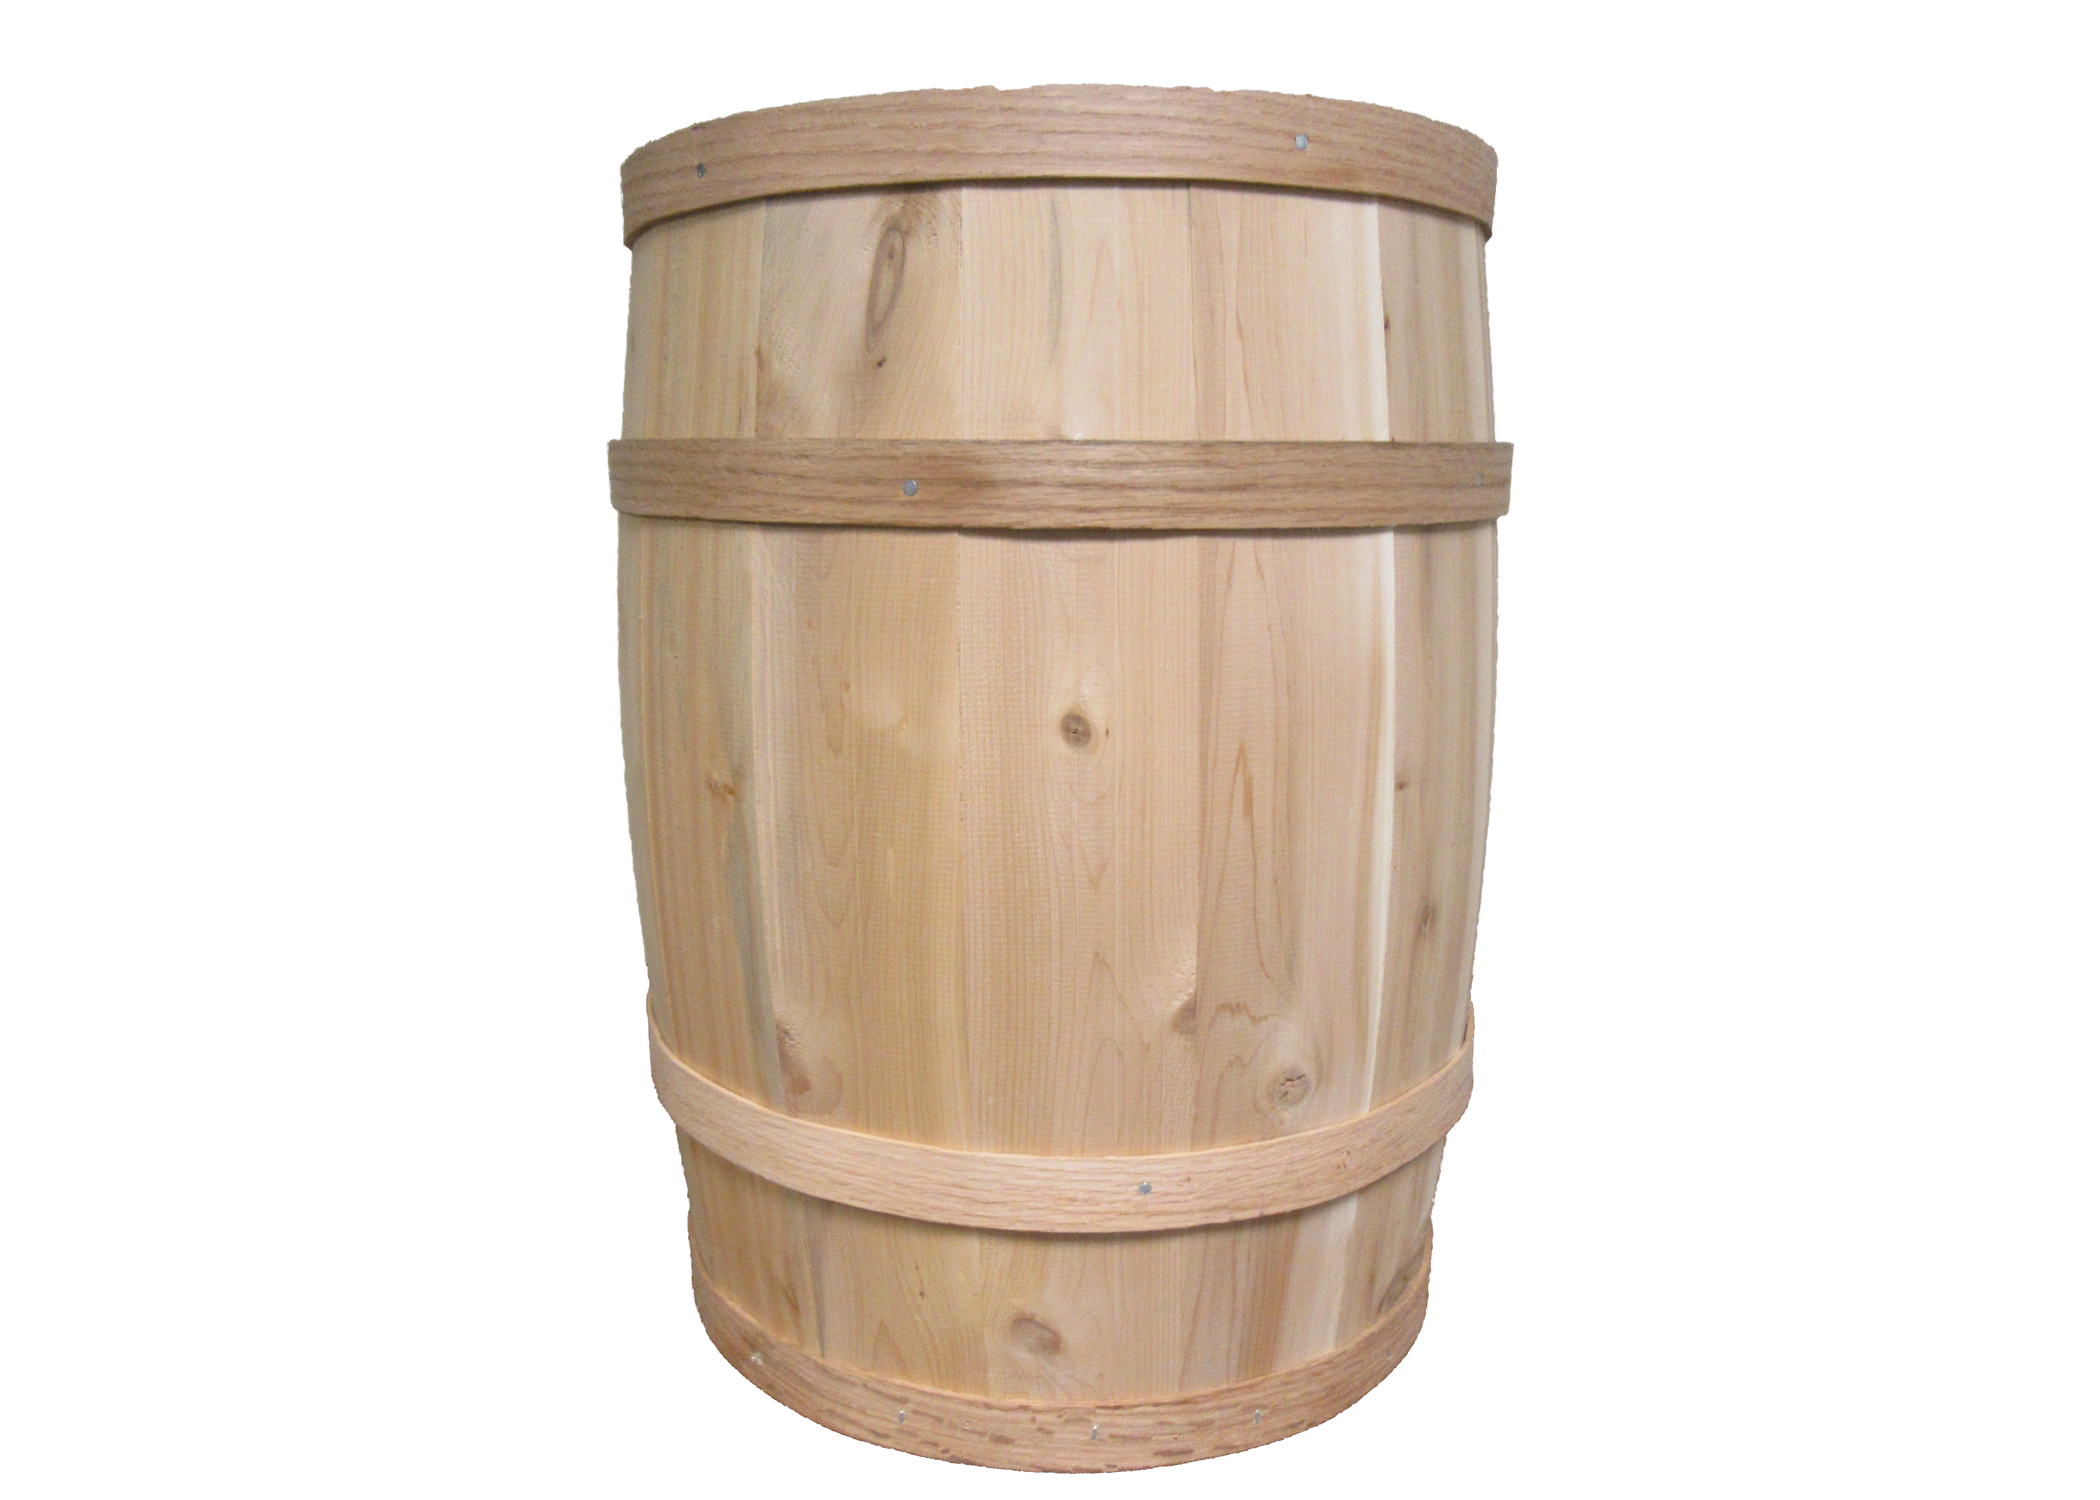 All Maine Bucket B129 12 x 19 Inch Barrel